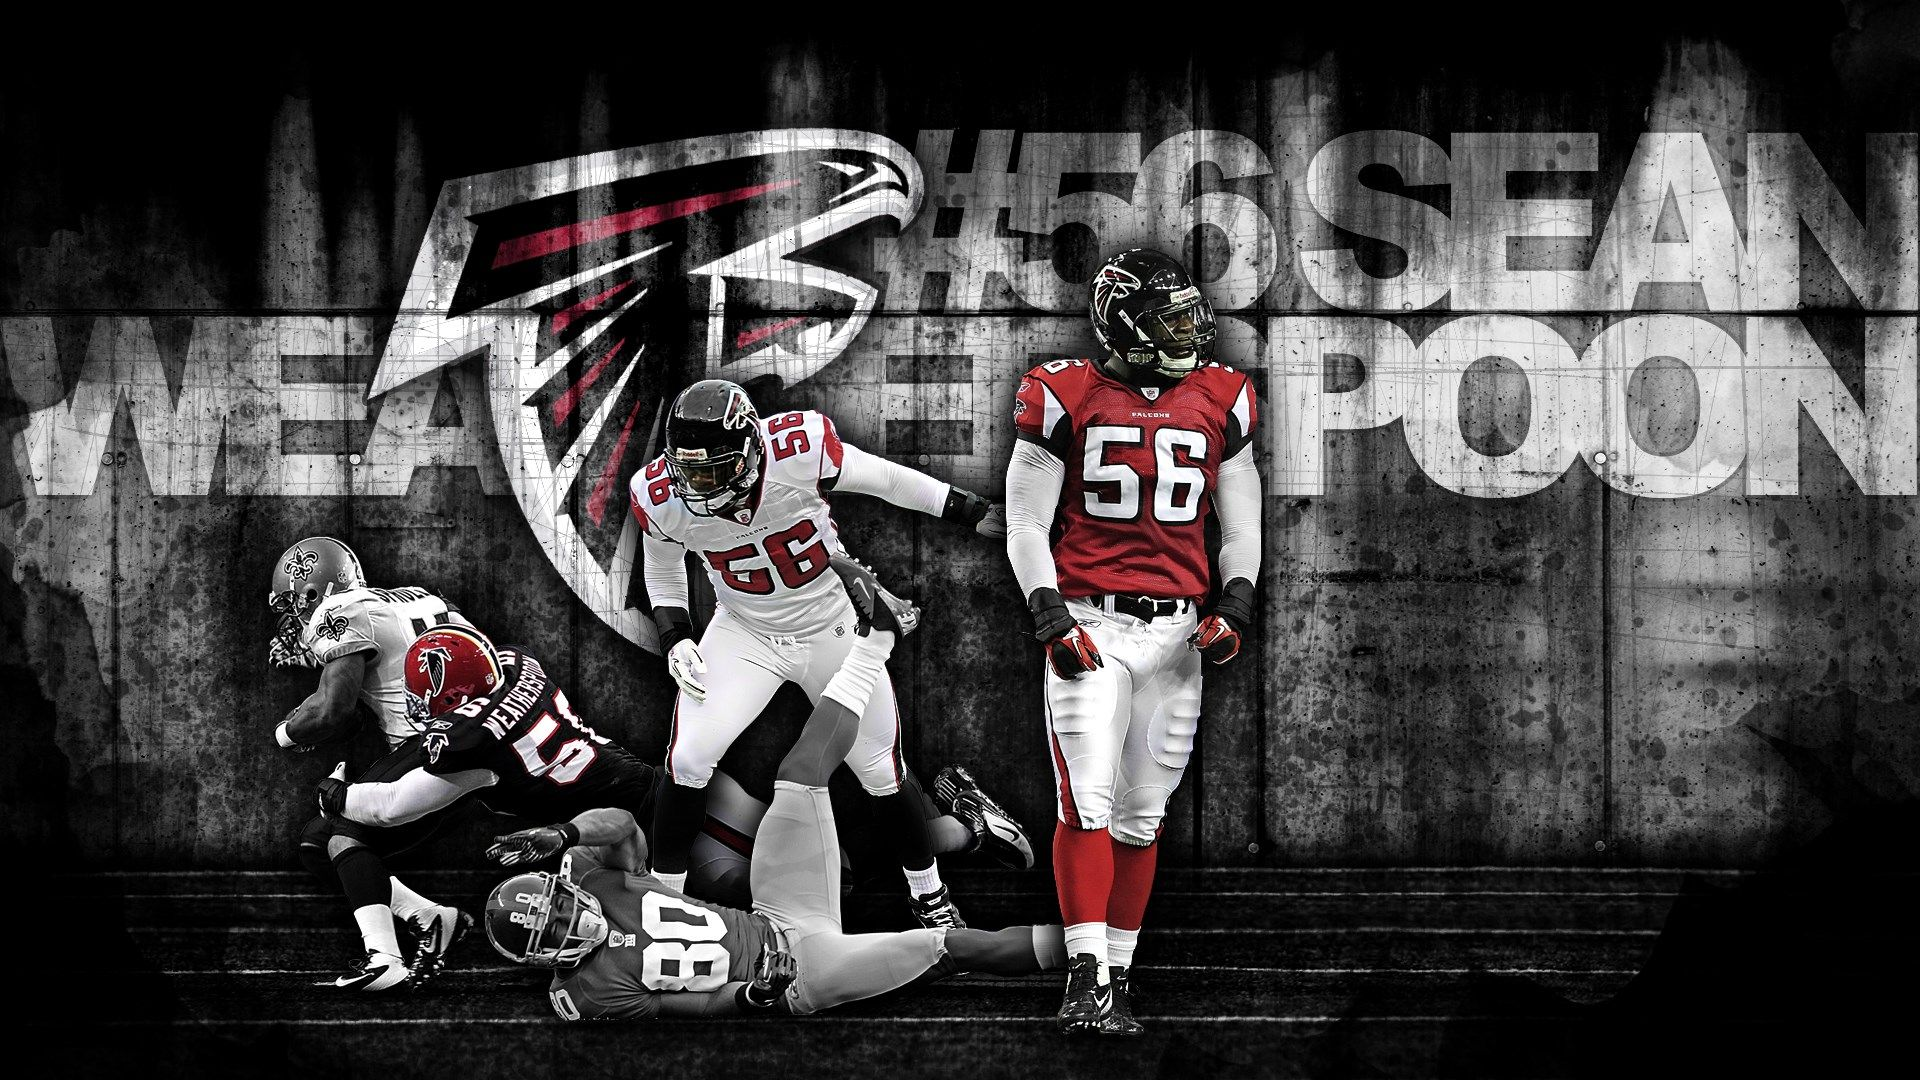 Atlanta Falcons Desktop Wallpapers Sean Weatherspoon By Crebagger